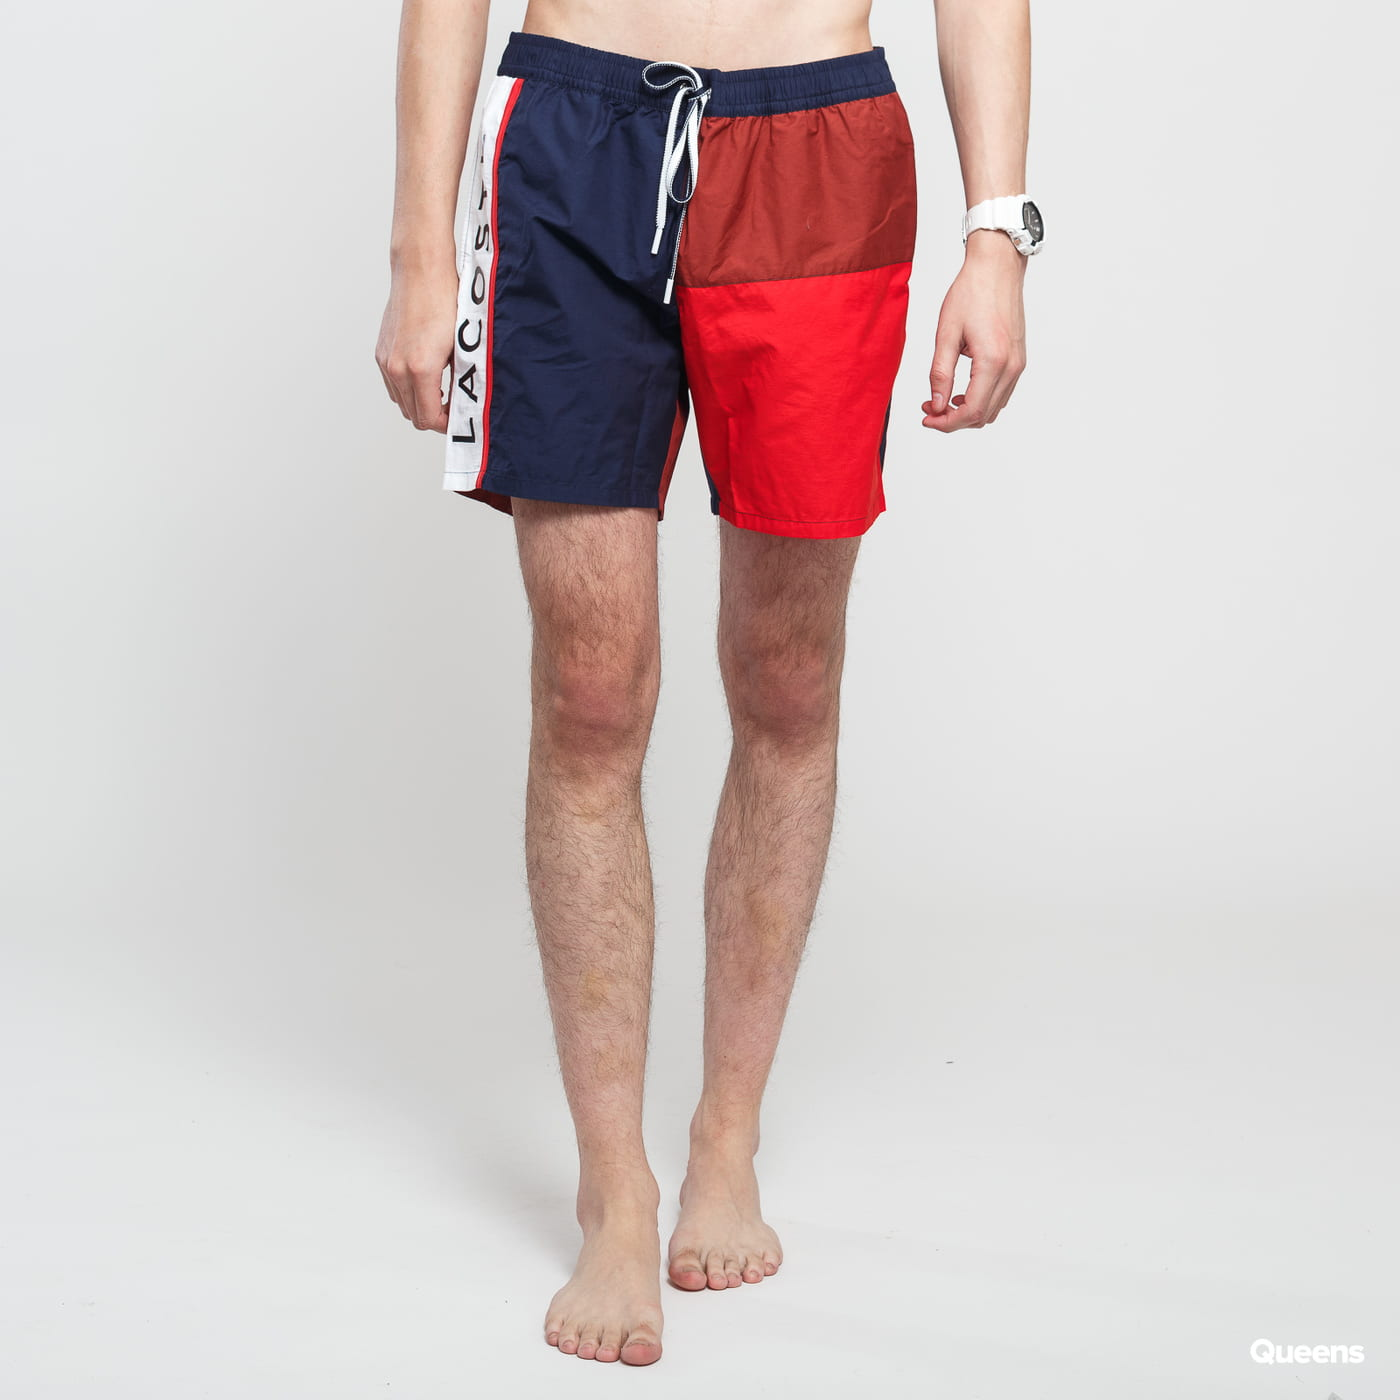 207eedc2 LACOSTE Swimming Trunks navy / brown / red / white